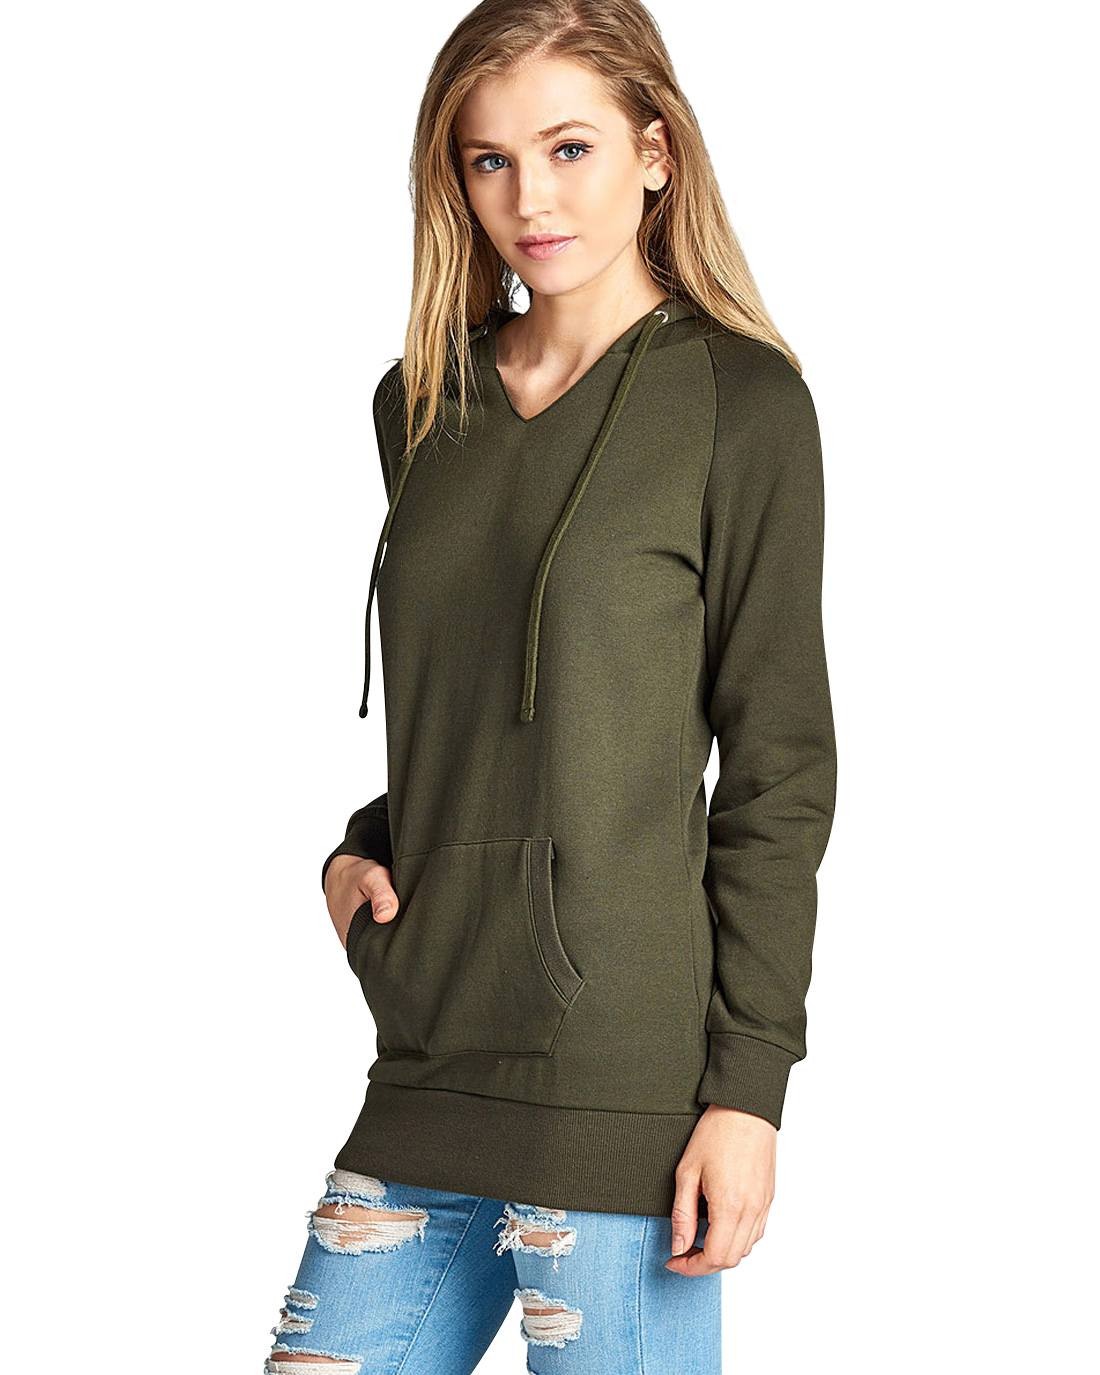 French Terry knit hoodie-S-MY UPSCALE STORE